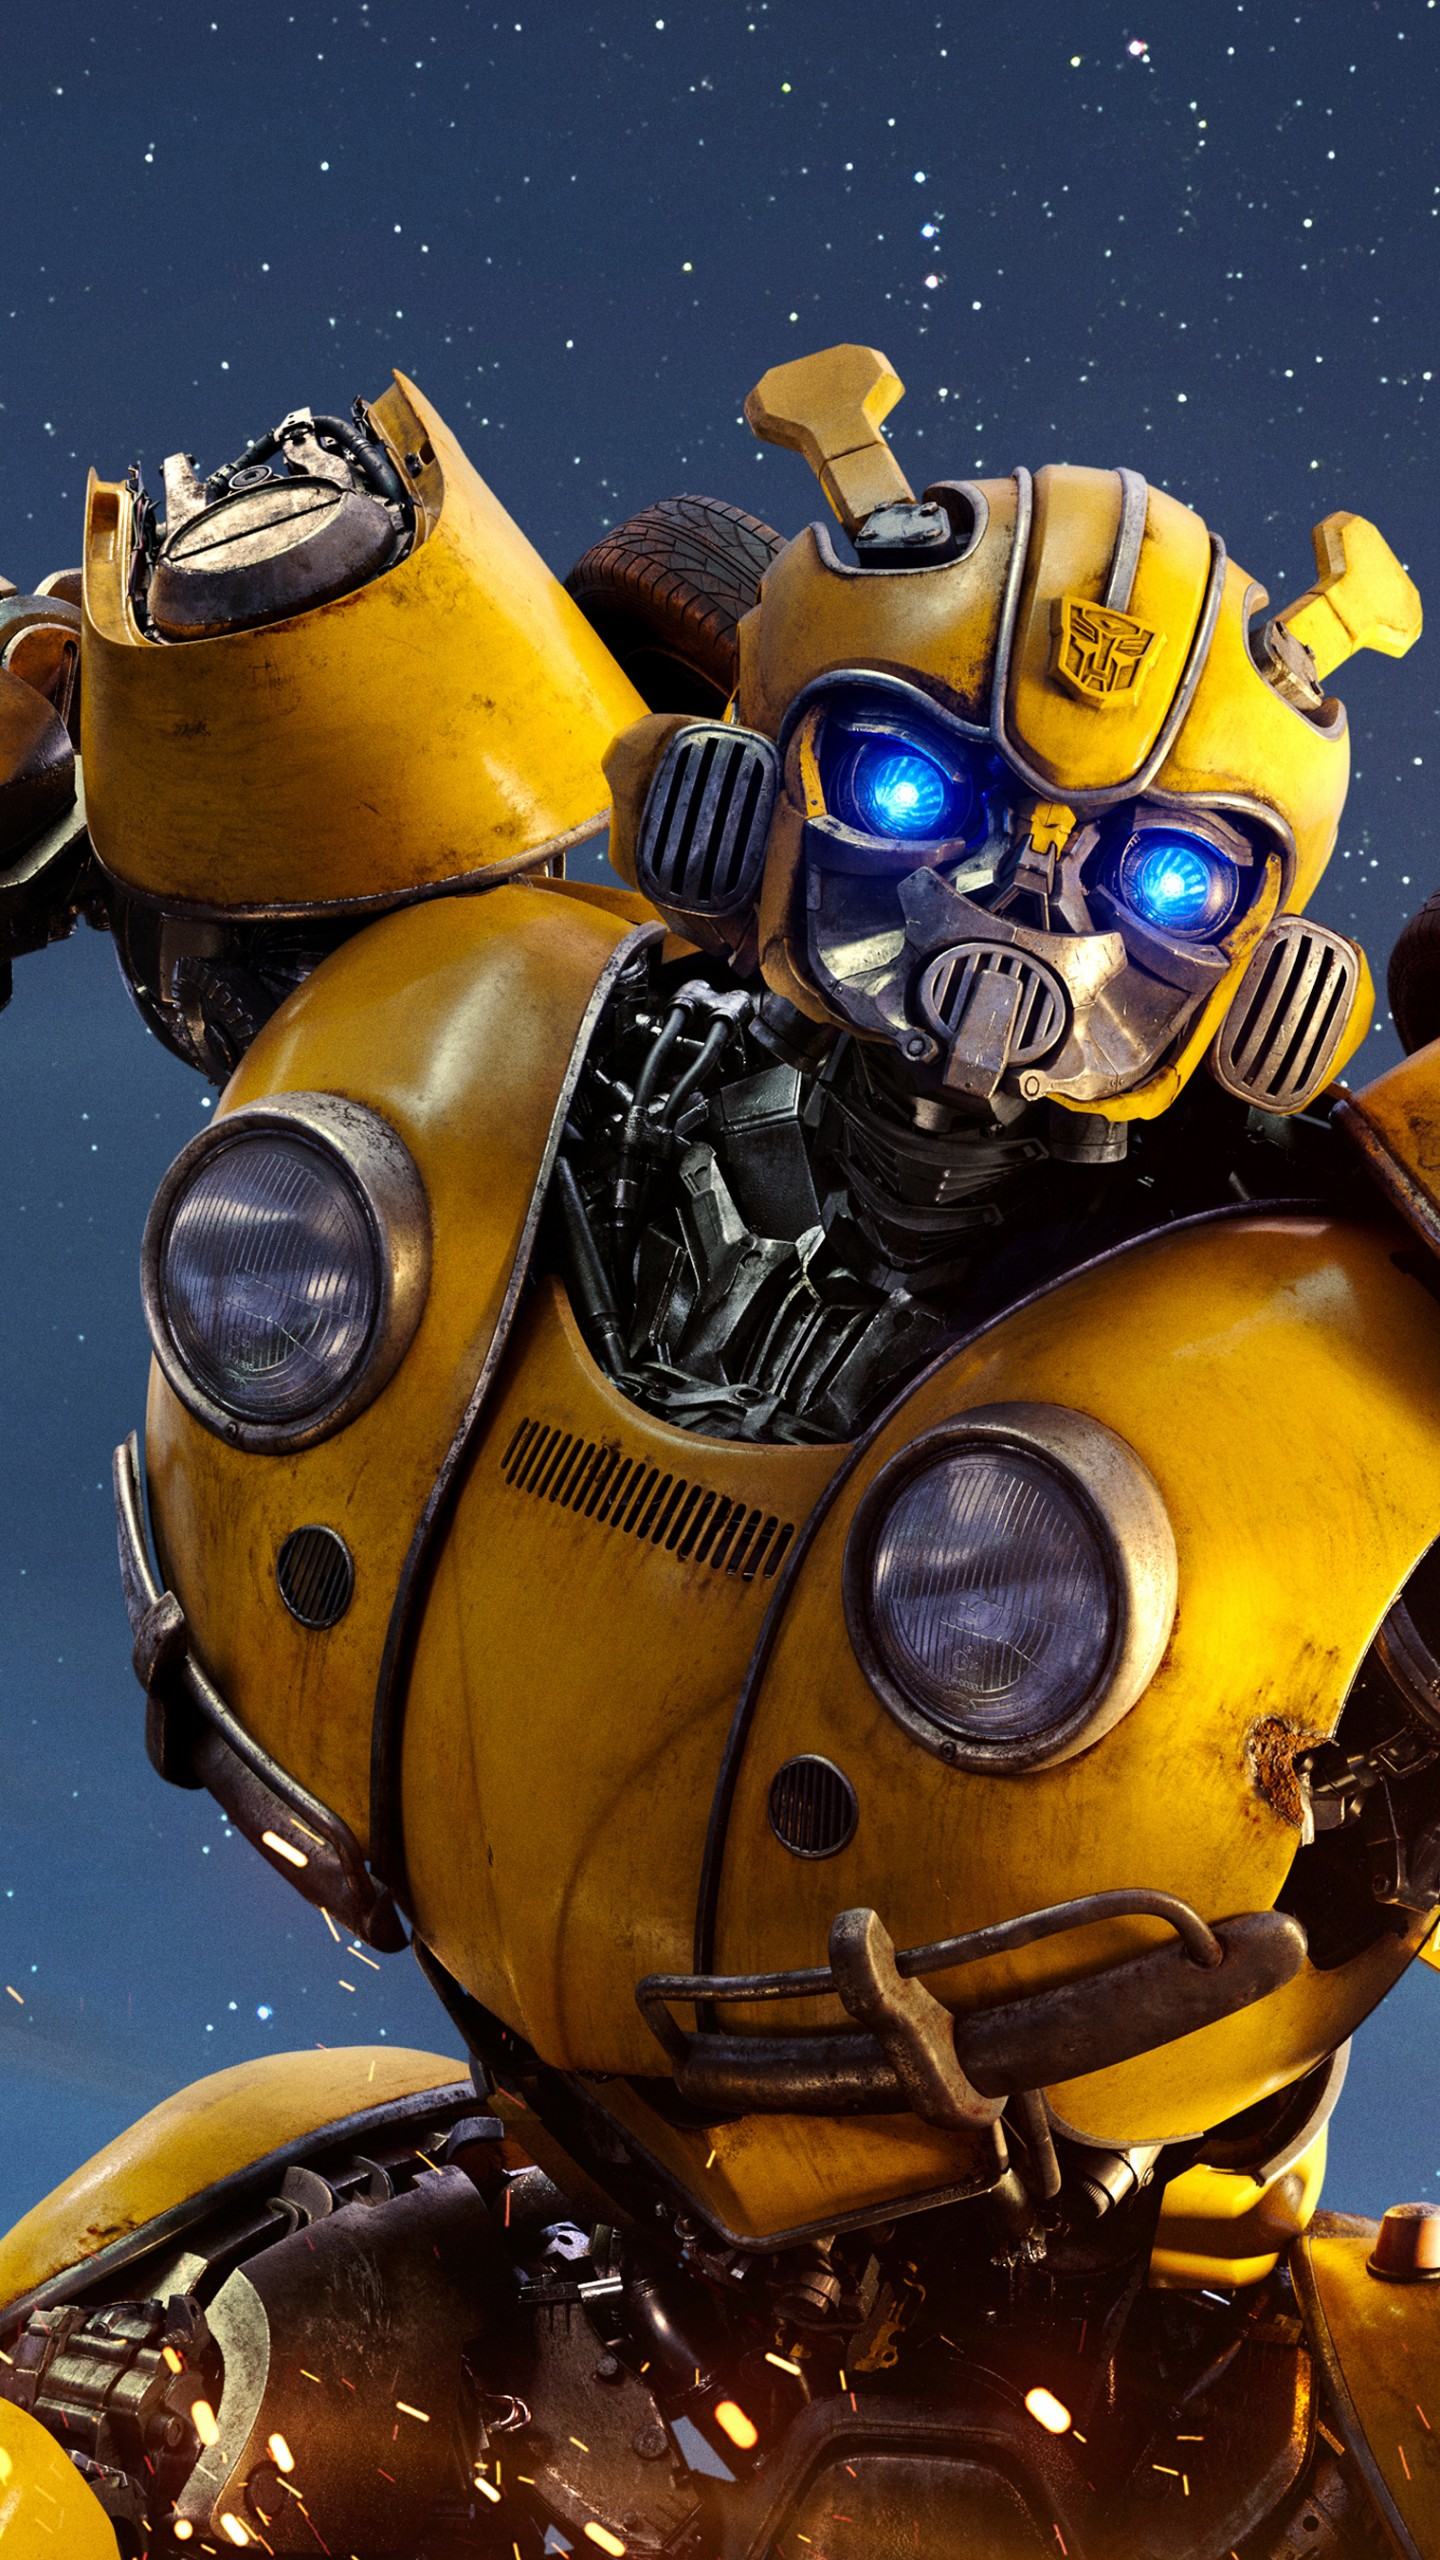 Fall Wallpaper 1080x1920 Wallpaper Transformers Bumblebee Poster 4k Movies 20945